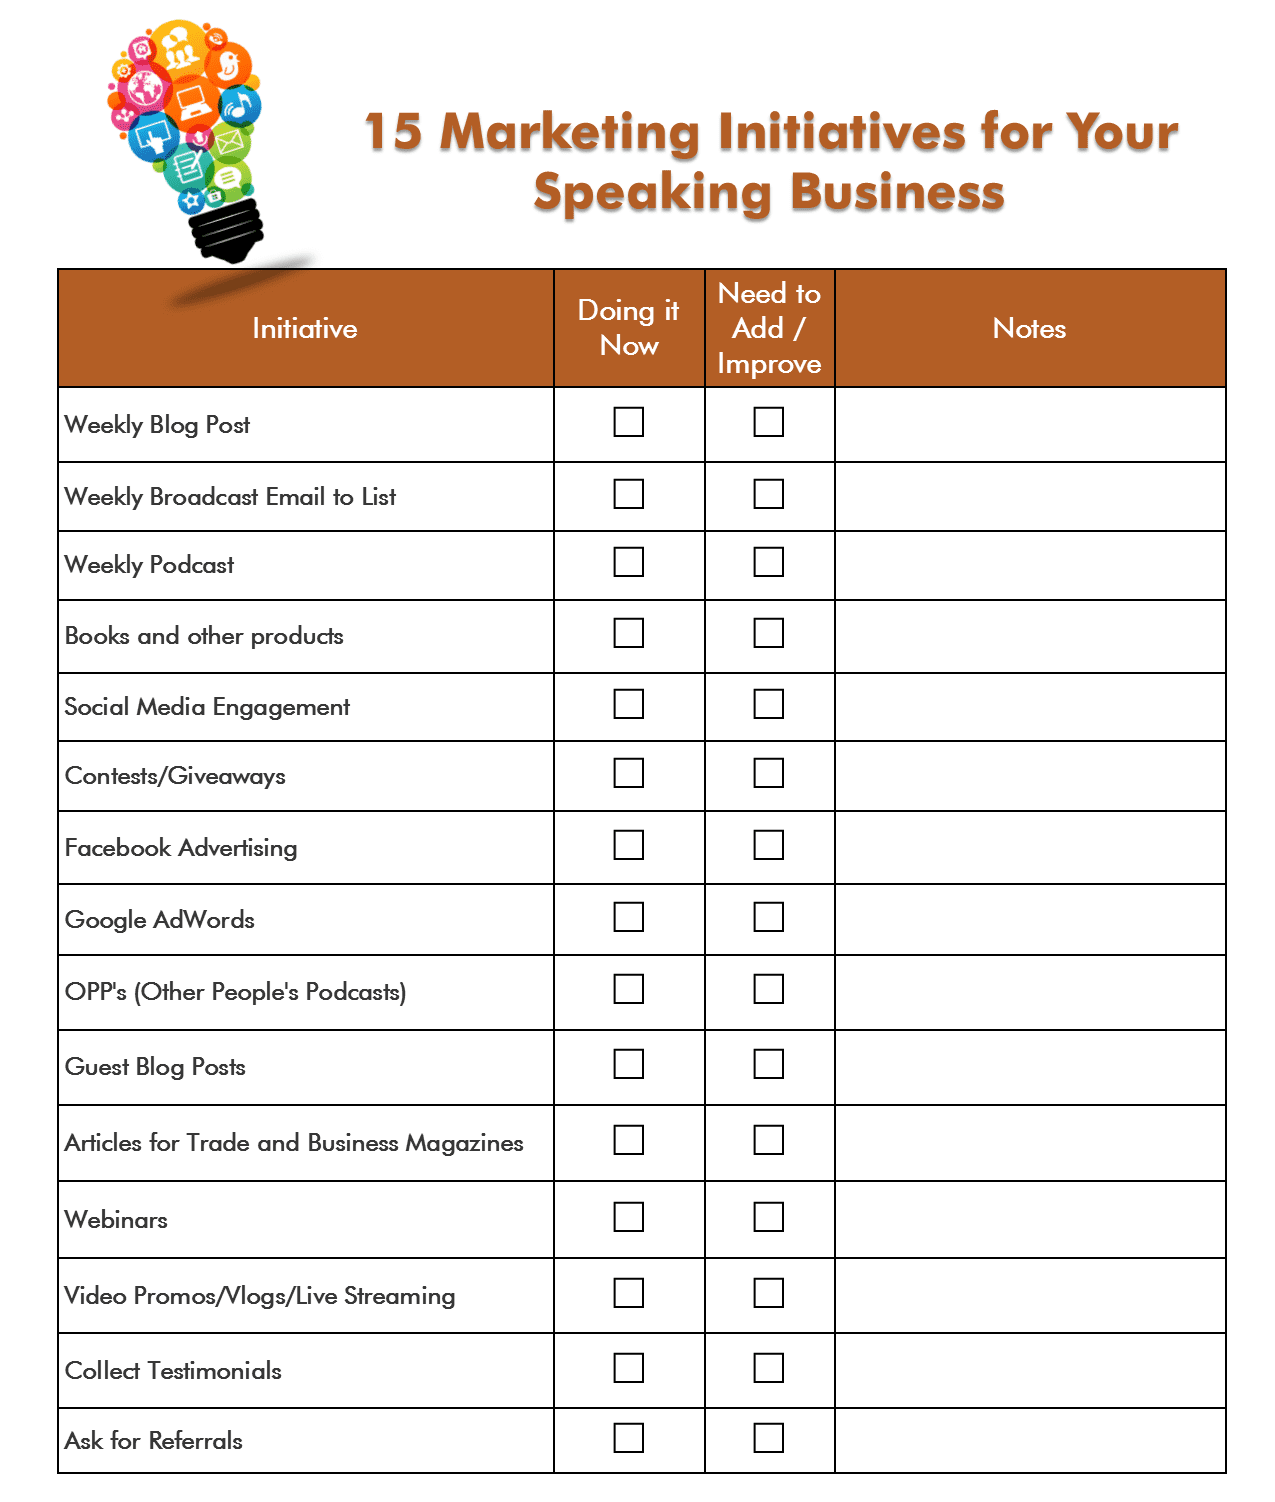 marketing initiatives checklist